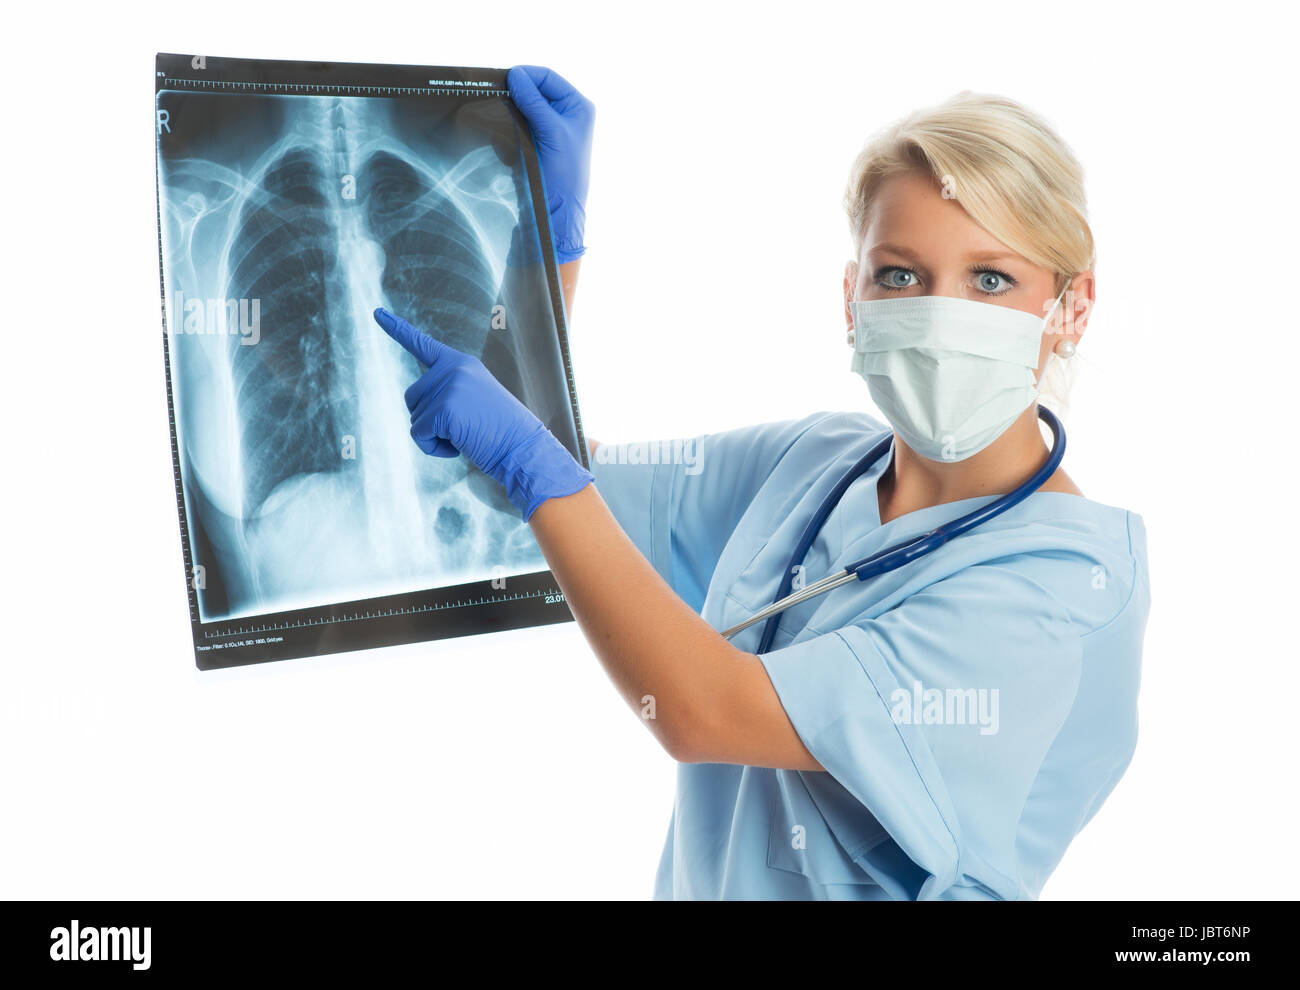 woman doctor with radiographs - Stock Image